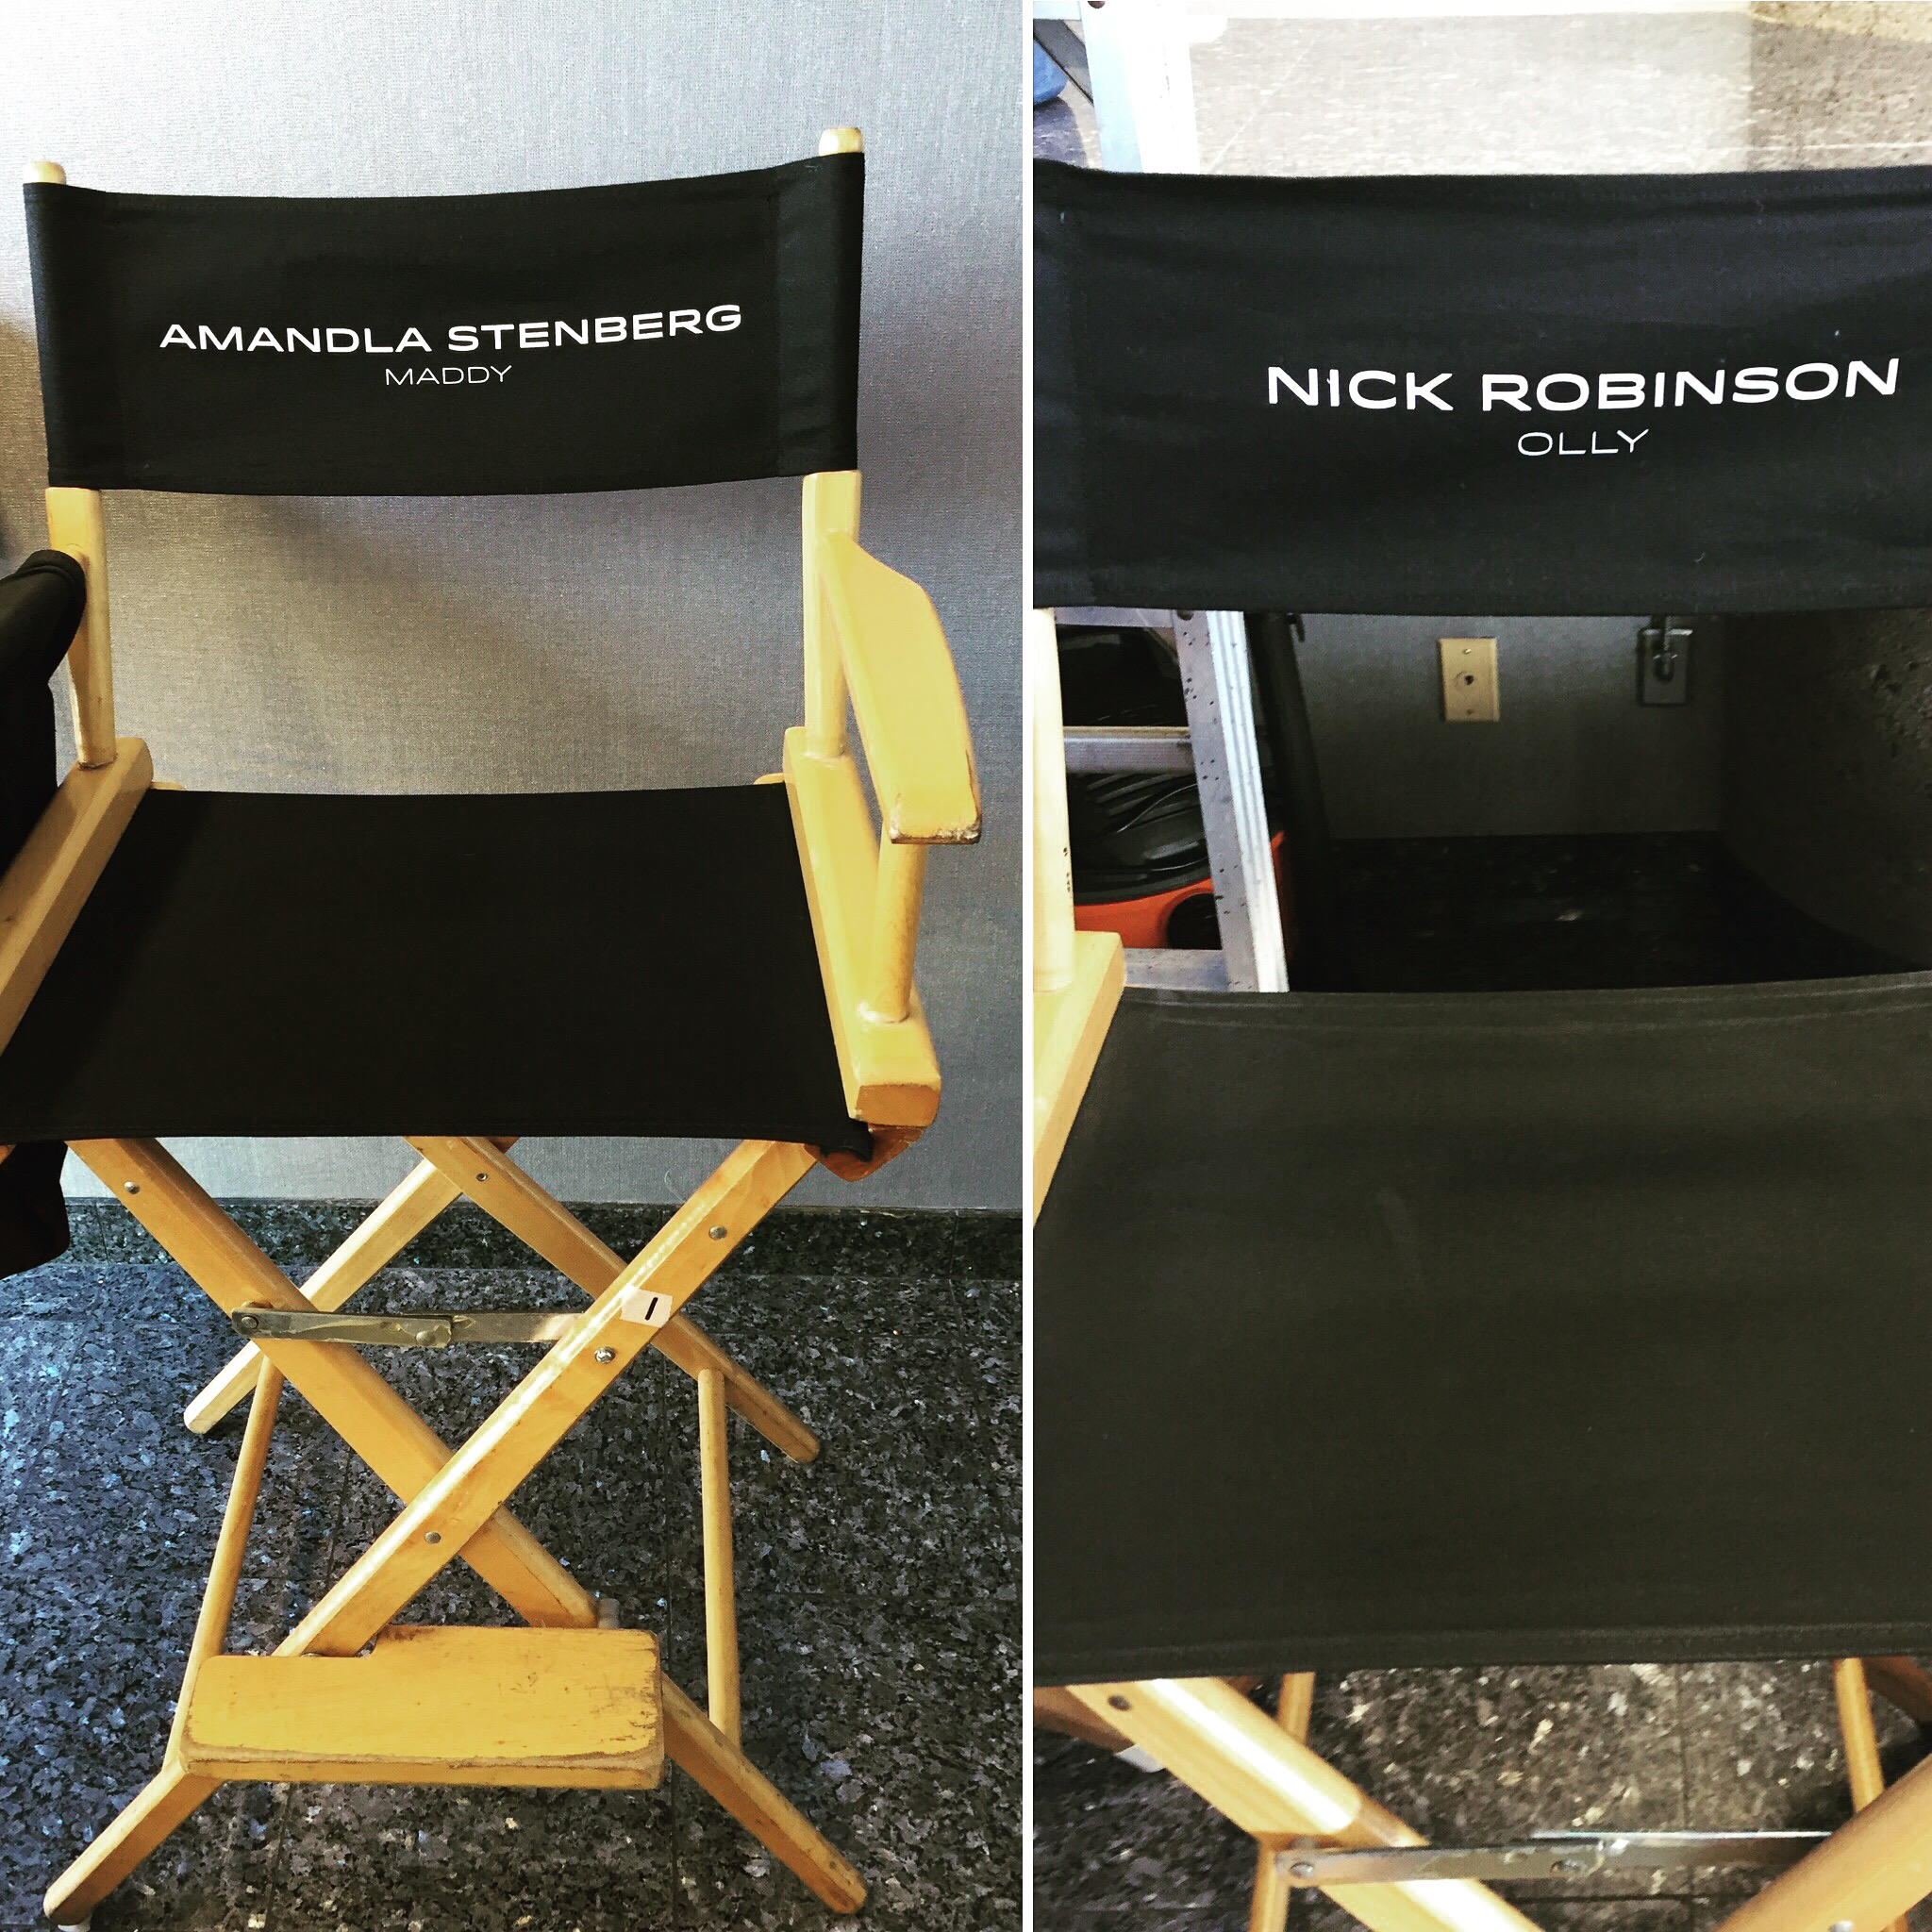 Amandla Stenberg's (Maddy) & Nick Robinson's (Olly) chairs from the set of the EVERYTHING, EVERYTHING movie!